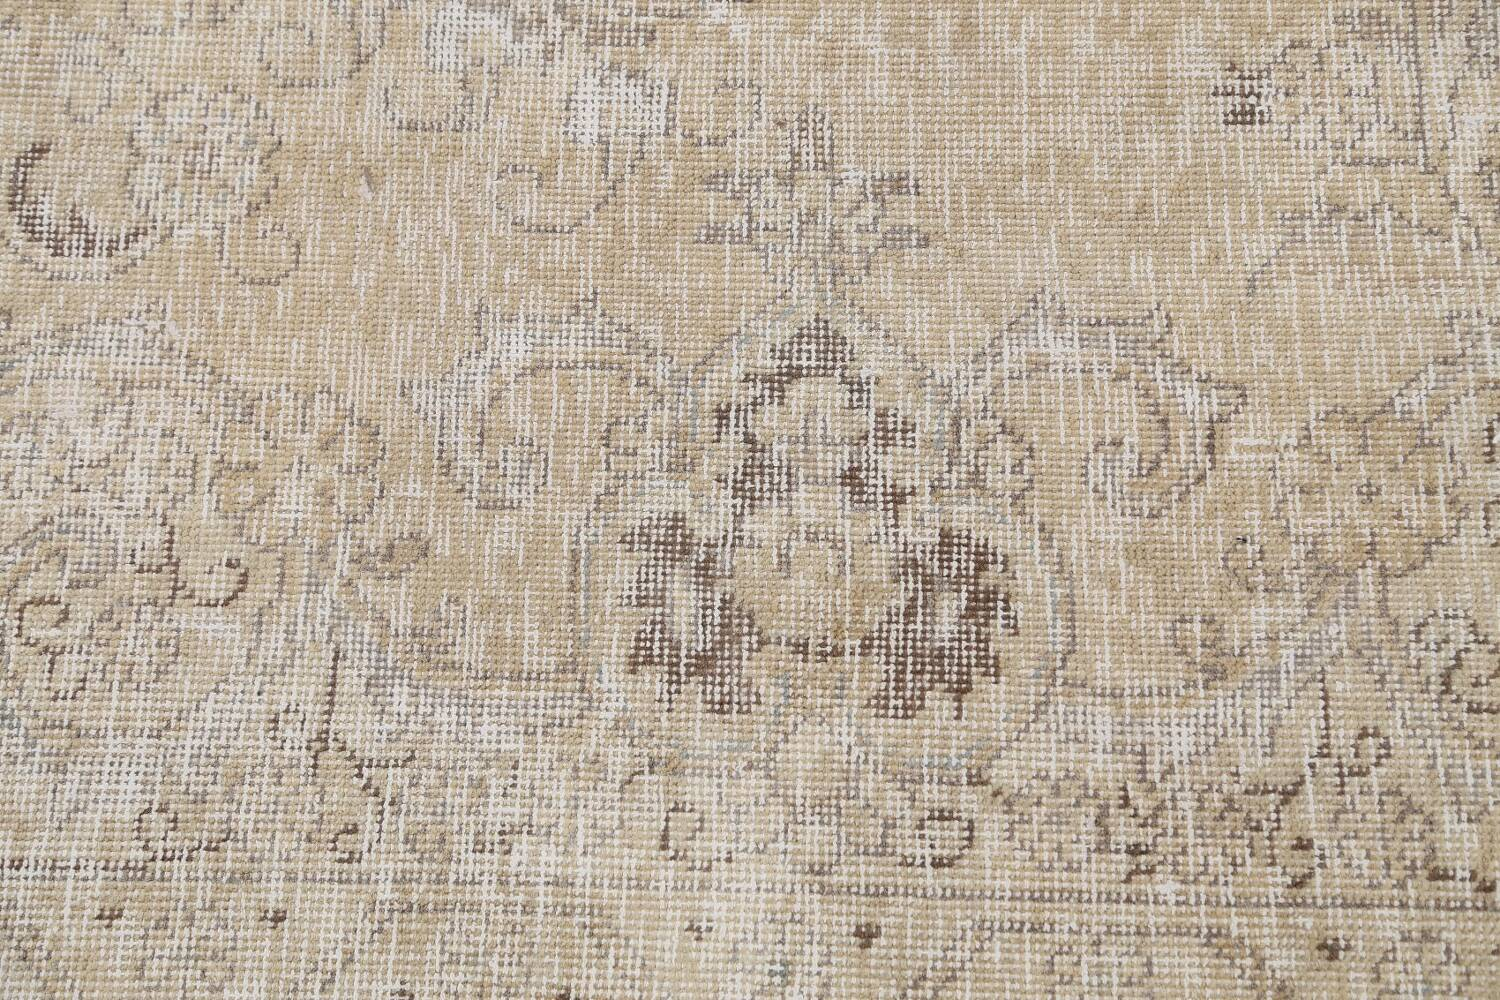 Antique Muted Floral Tabriz Persian Area Rug 9x13 image 9